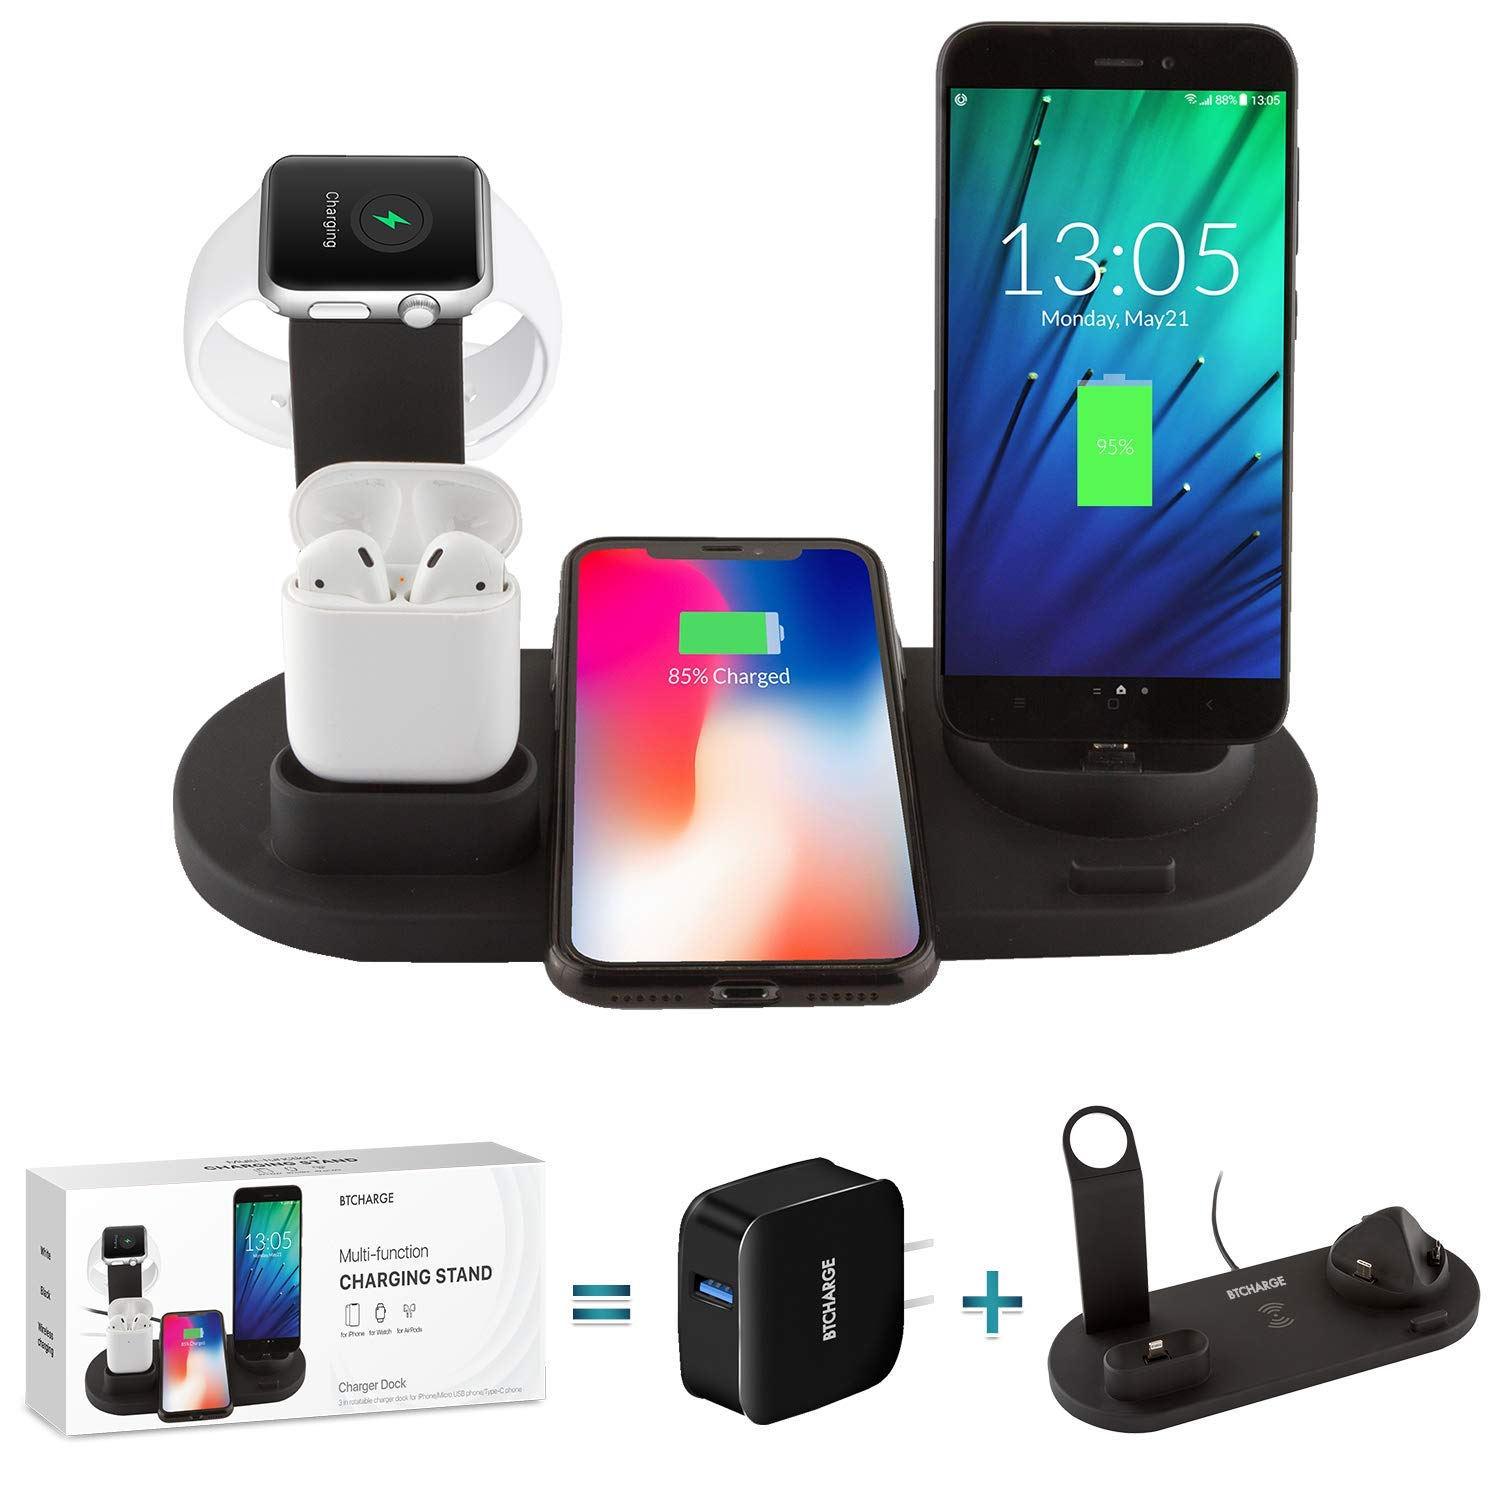 BTCHARGE Wireless Charger Dock Compatible